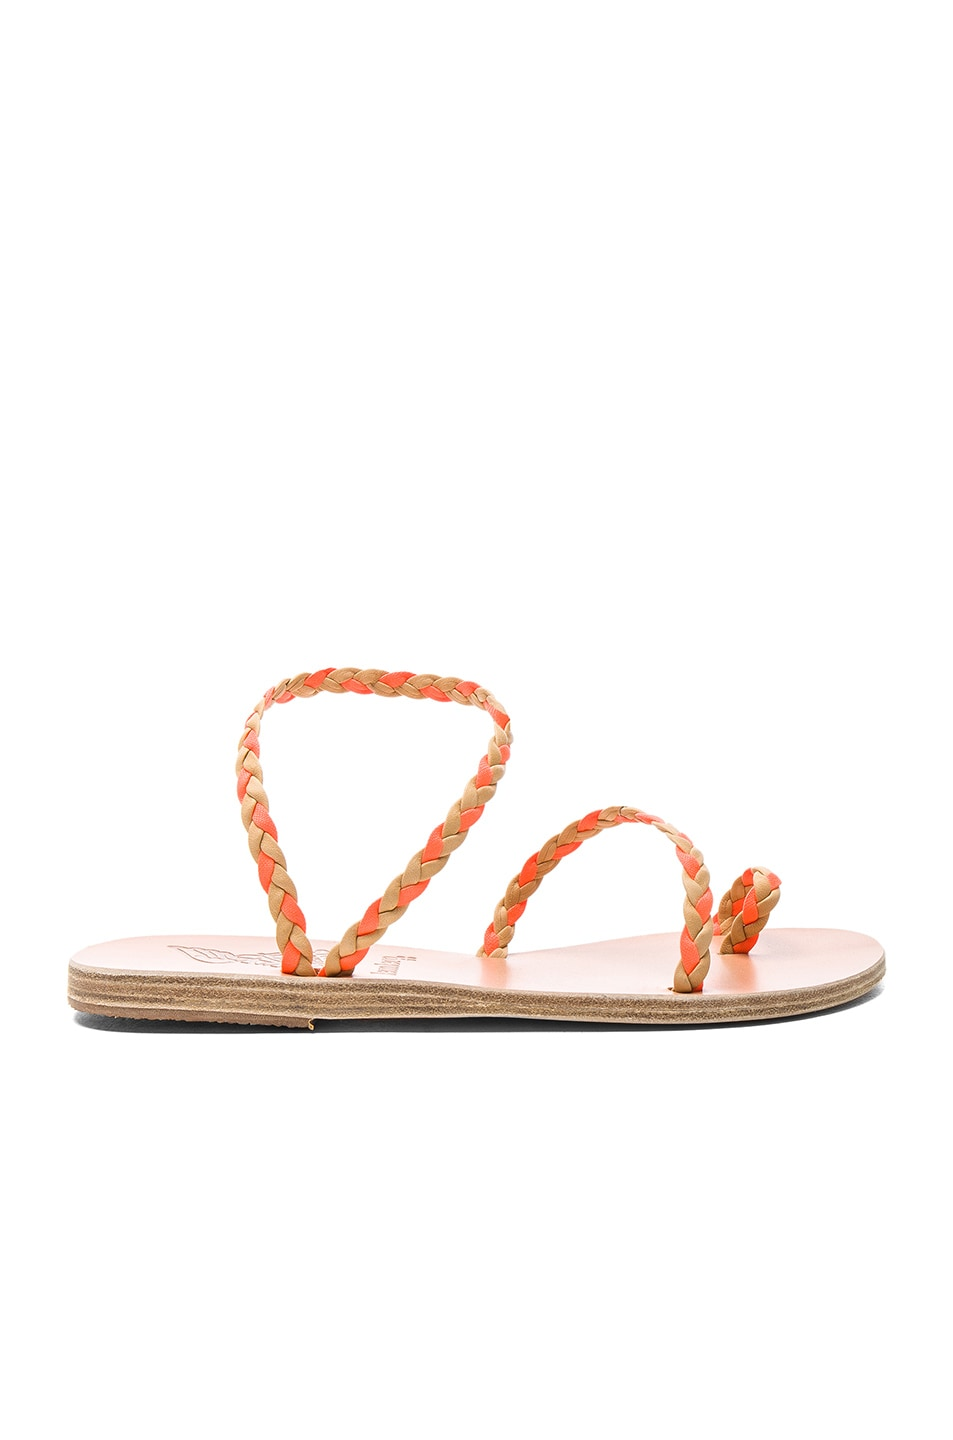 Image 1 of Ancient Greek Sandals x Lemlem Leather Eleftheria Braids Sandals in Natural & Neon Orange